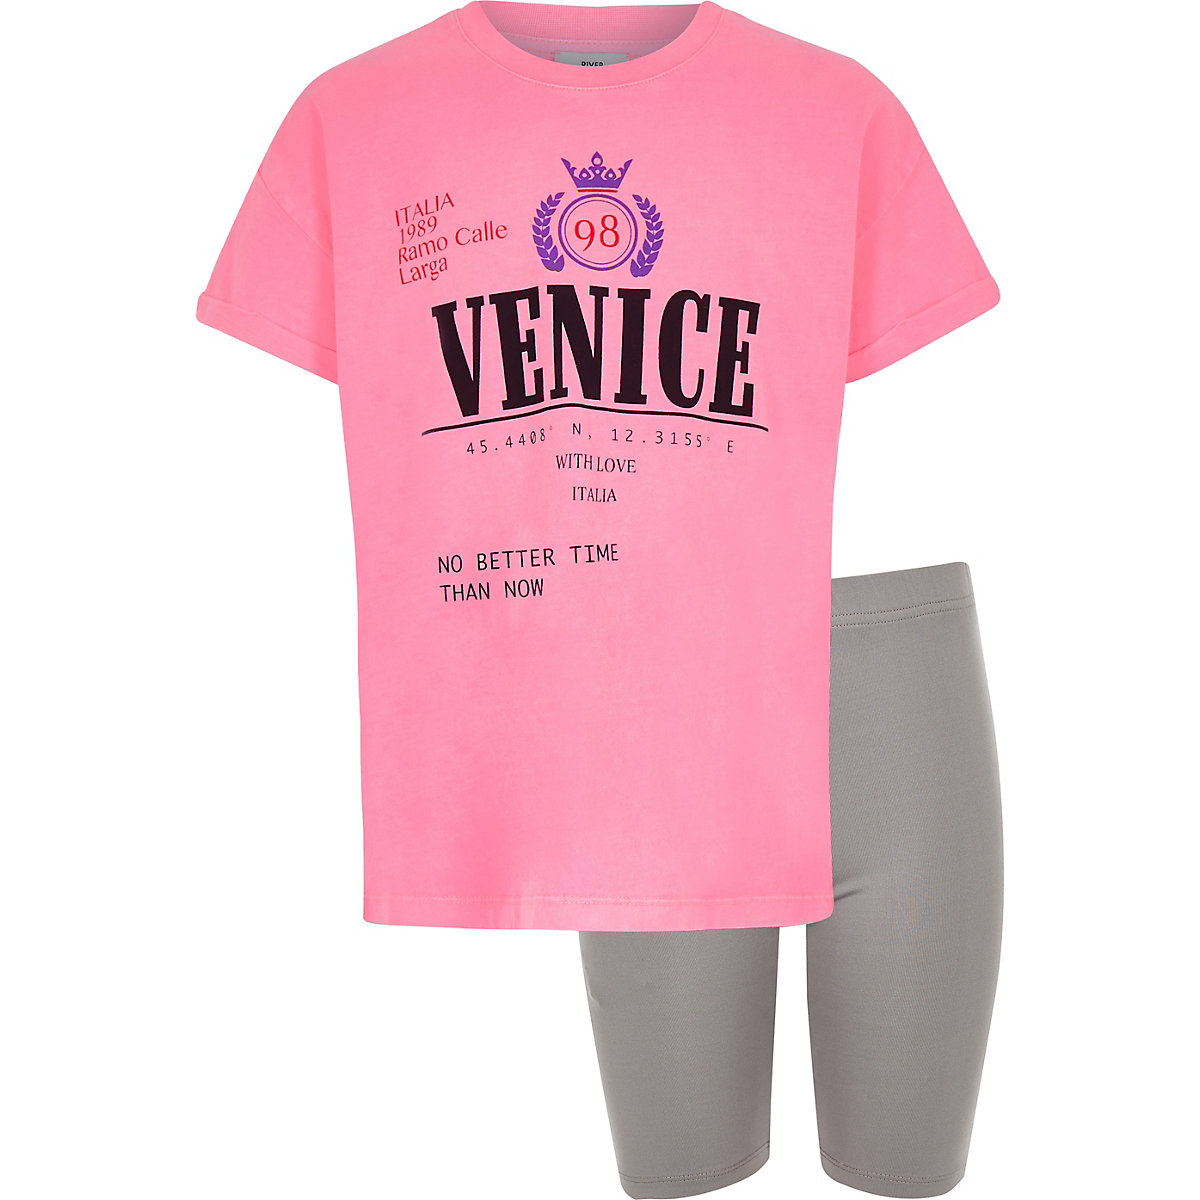 Girls pink 'Venice' T-shirt and short outfit